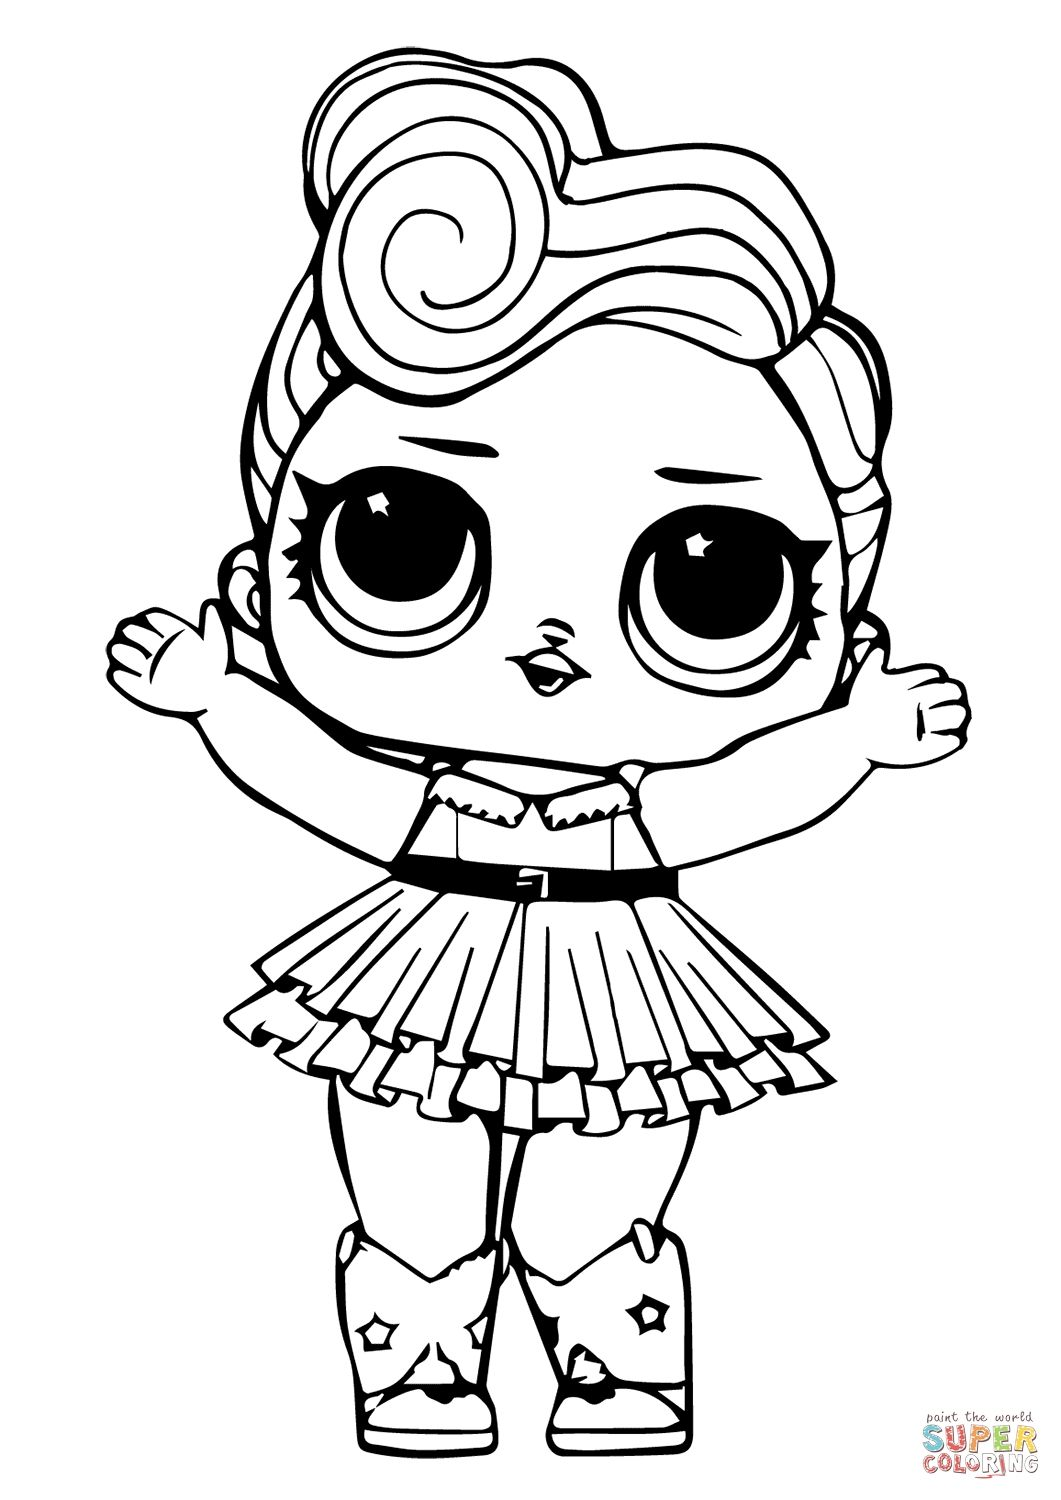 Lol Coloring Worksheets Lol Coloring Printables Lol Coloring Printouts Lol Coloring Wor Unicorn Coloring Pages Animal Coloring Pages Princess Coloring Pages